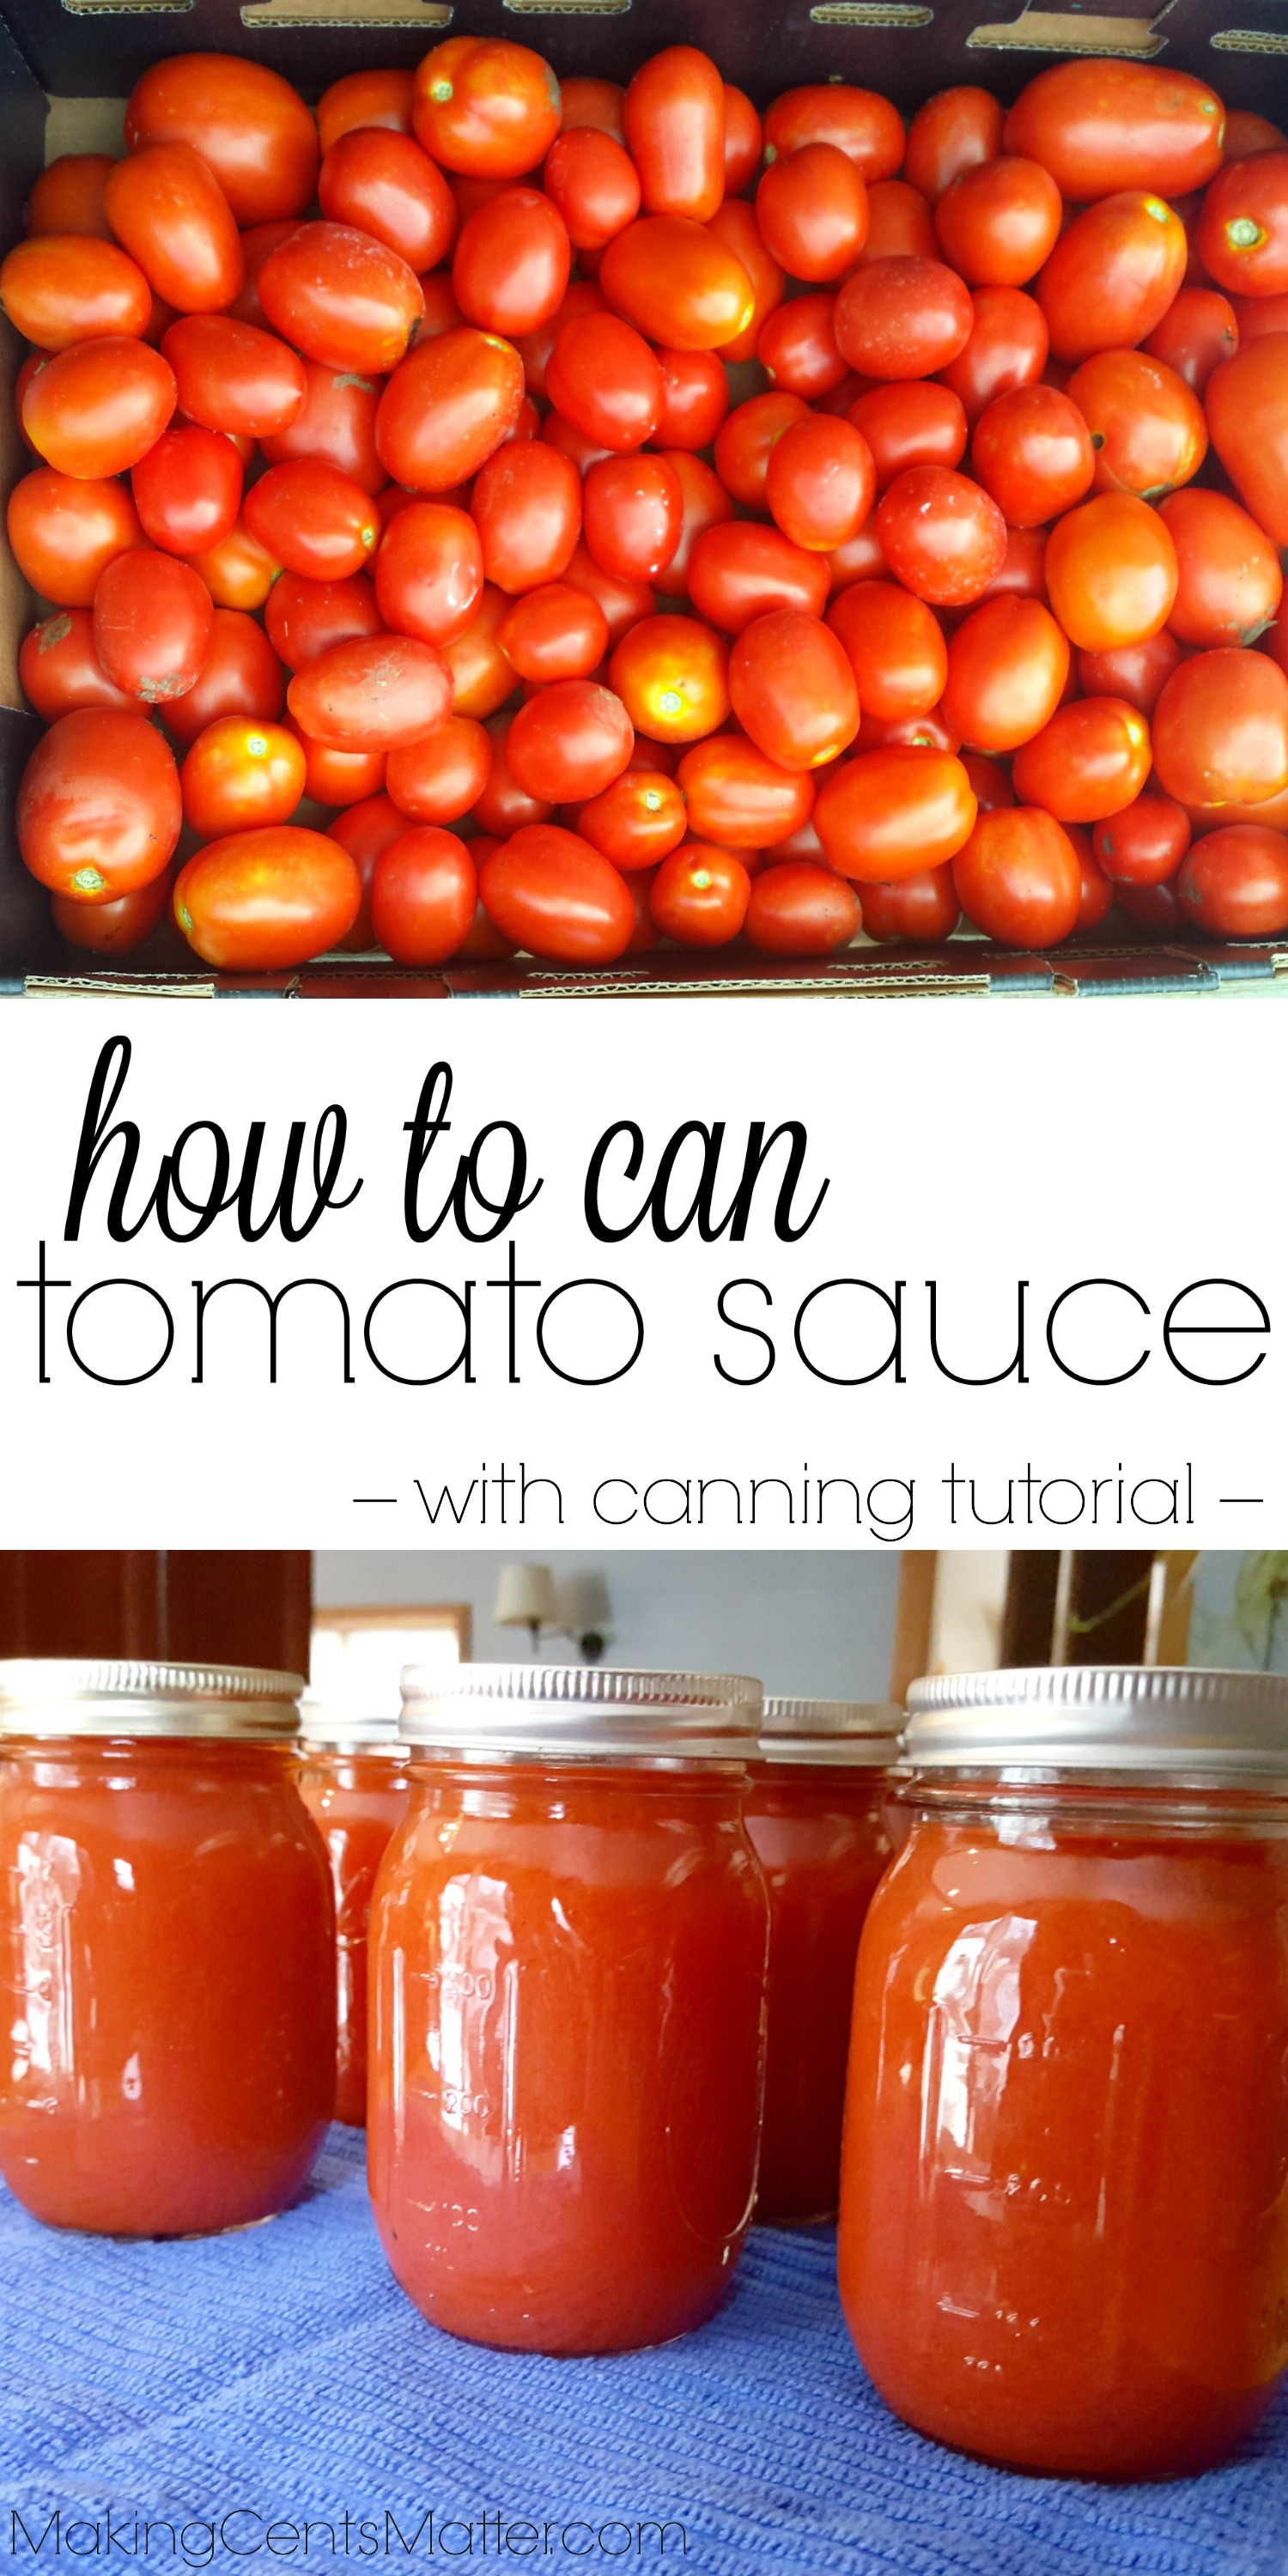 How To Can Tomato Sauce